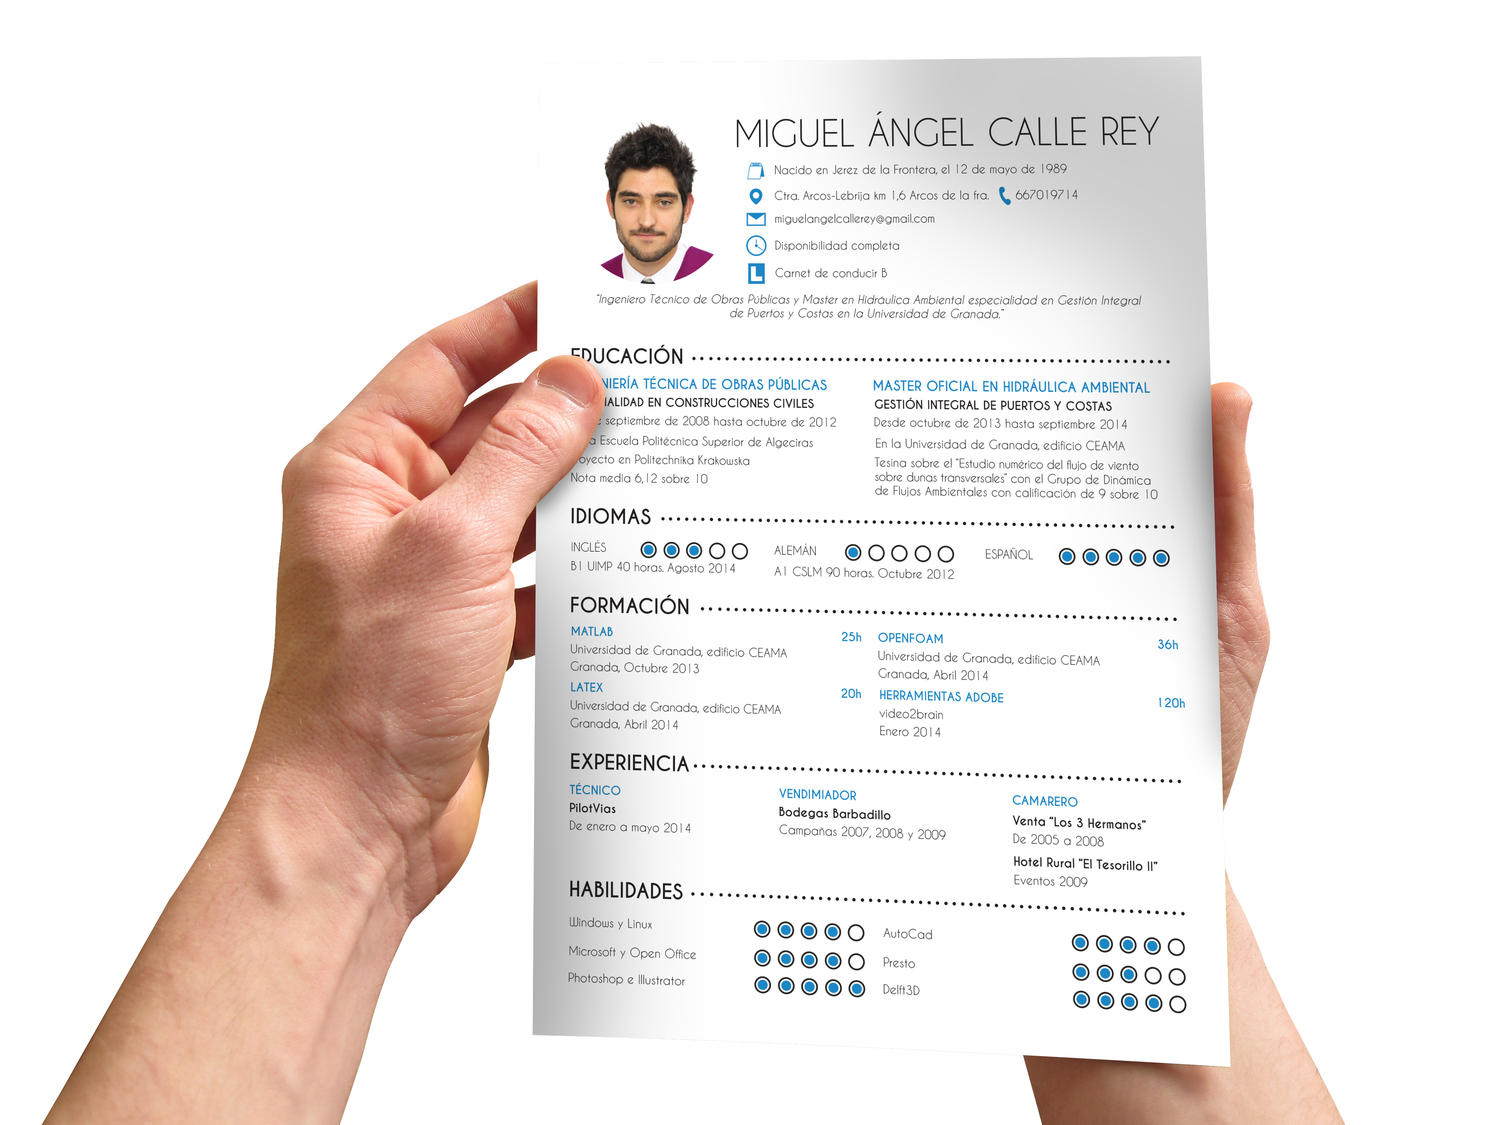 Creative Curriculum Vitae / Resume Design by kizzton - 69106